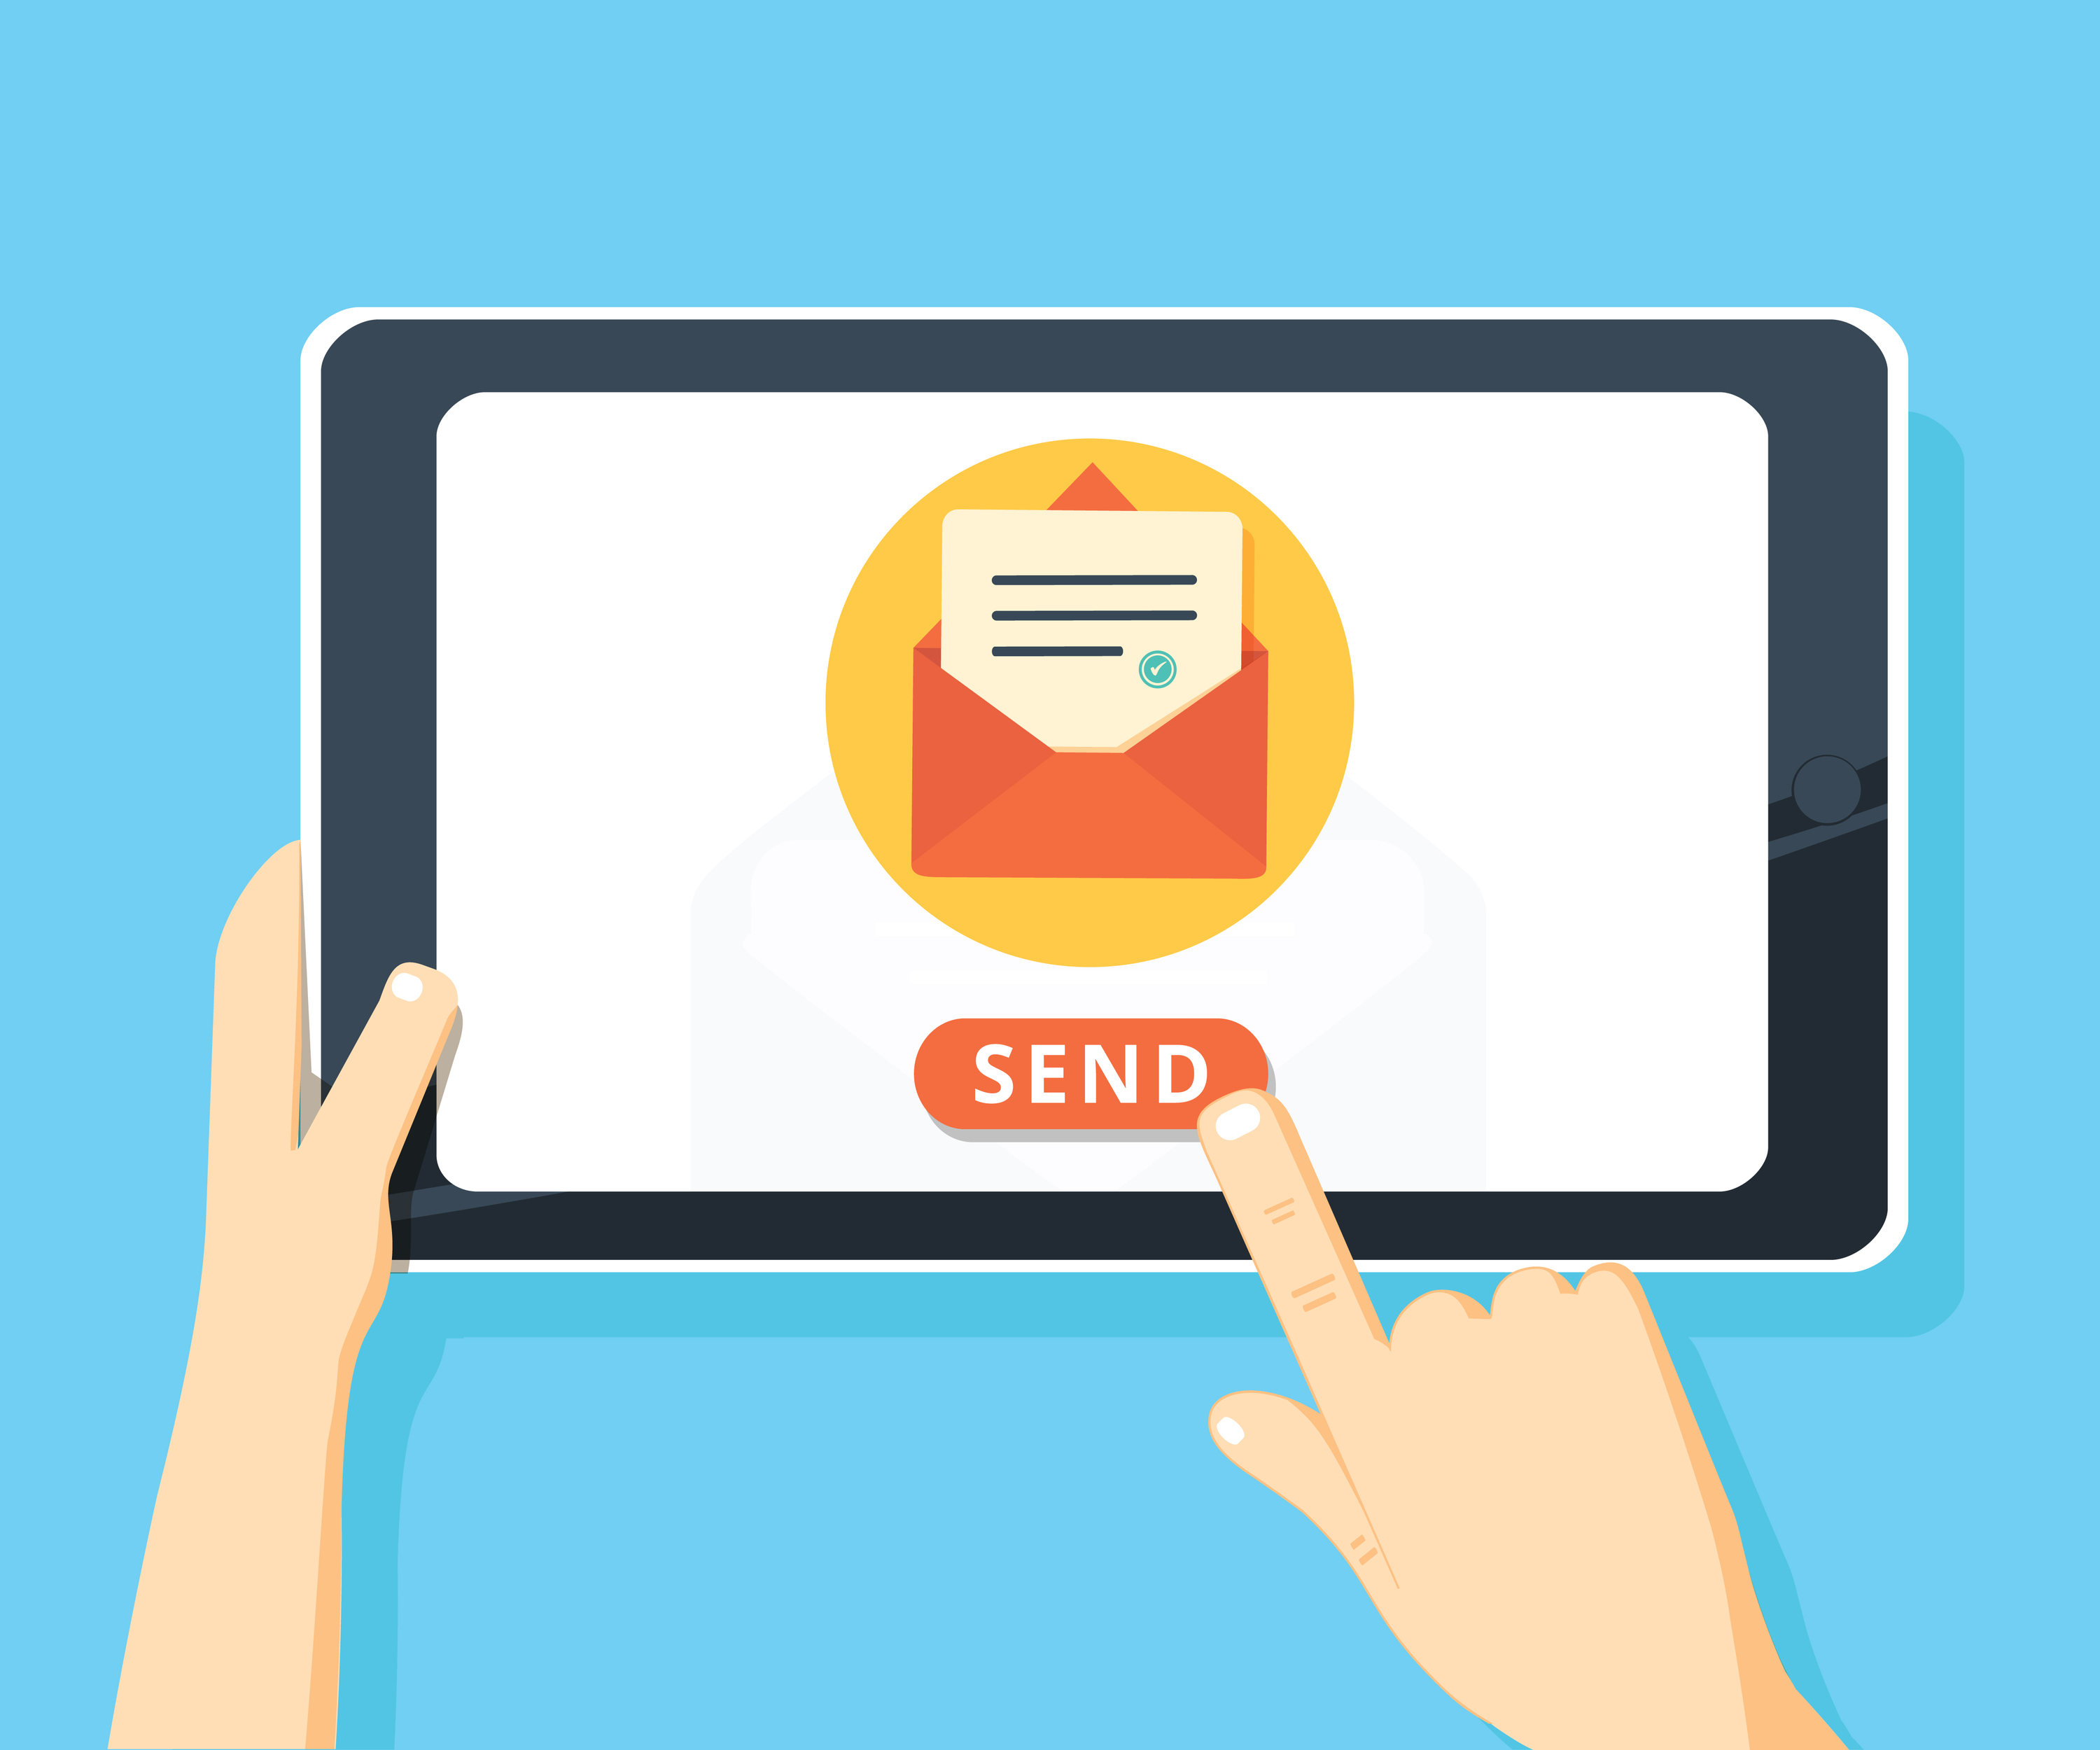 4 Steps To Build A Foundational Email Marketing List